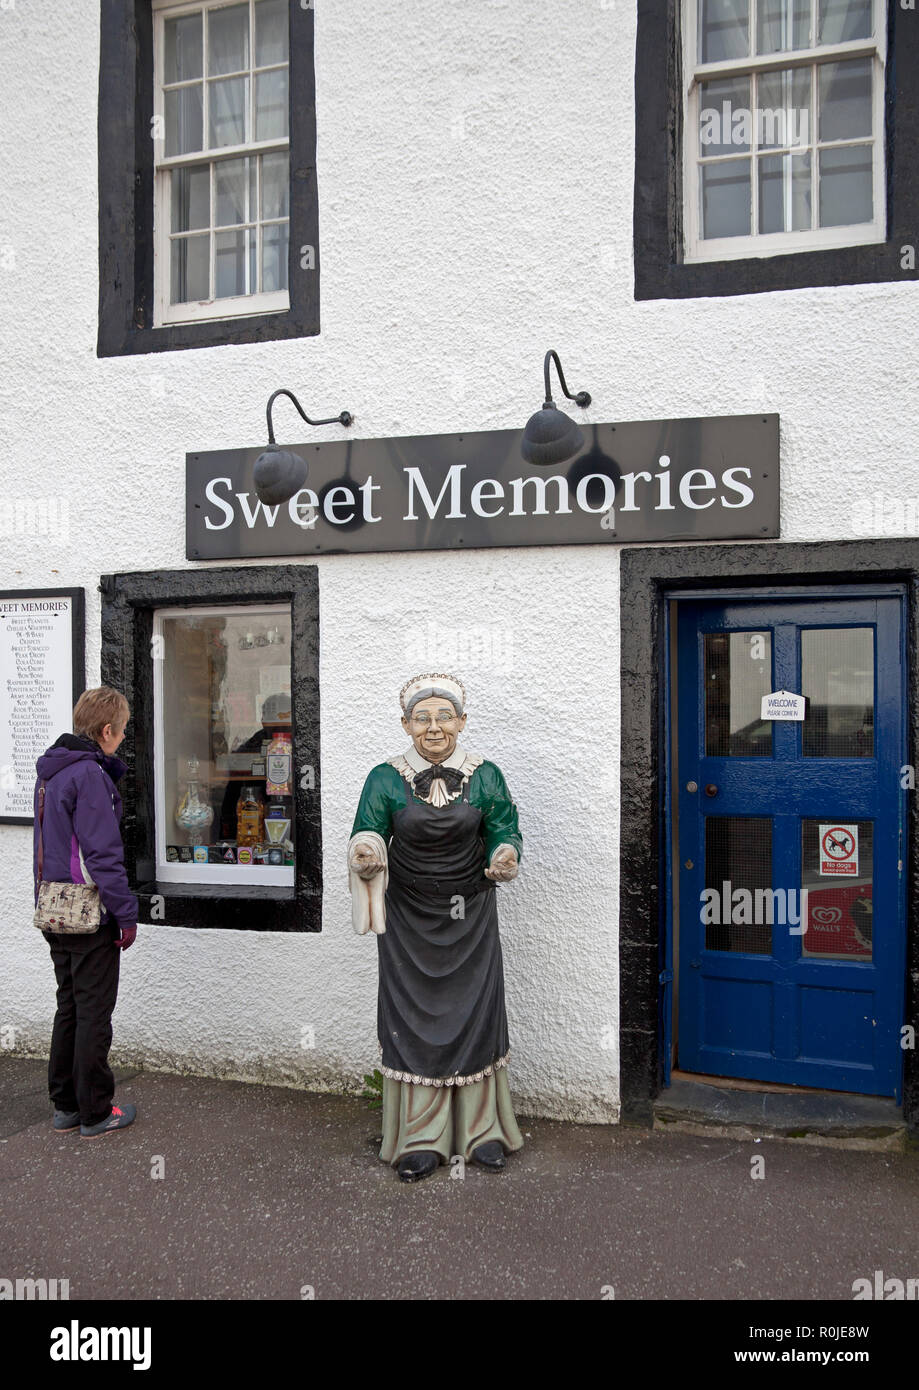 Sweet Memories sweet confectionery shop, Inverary, Argyll and Bute, Scotland, UK - Stock Image